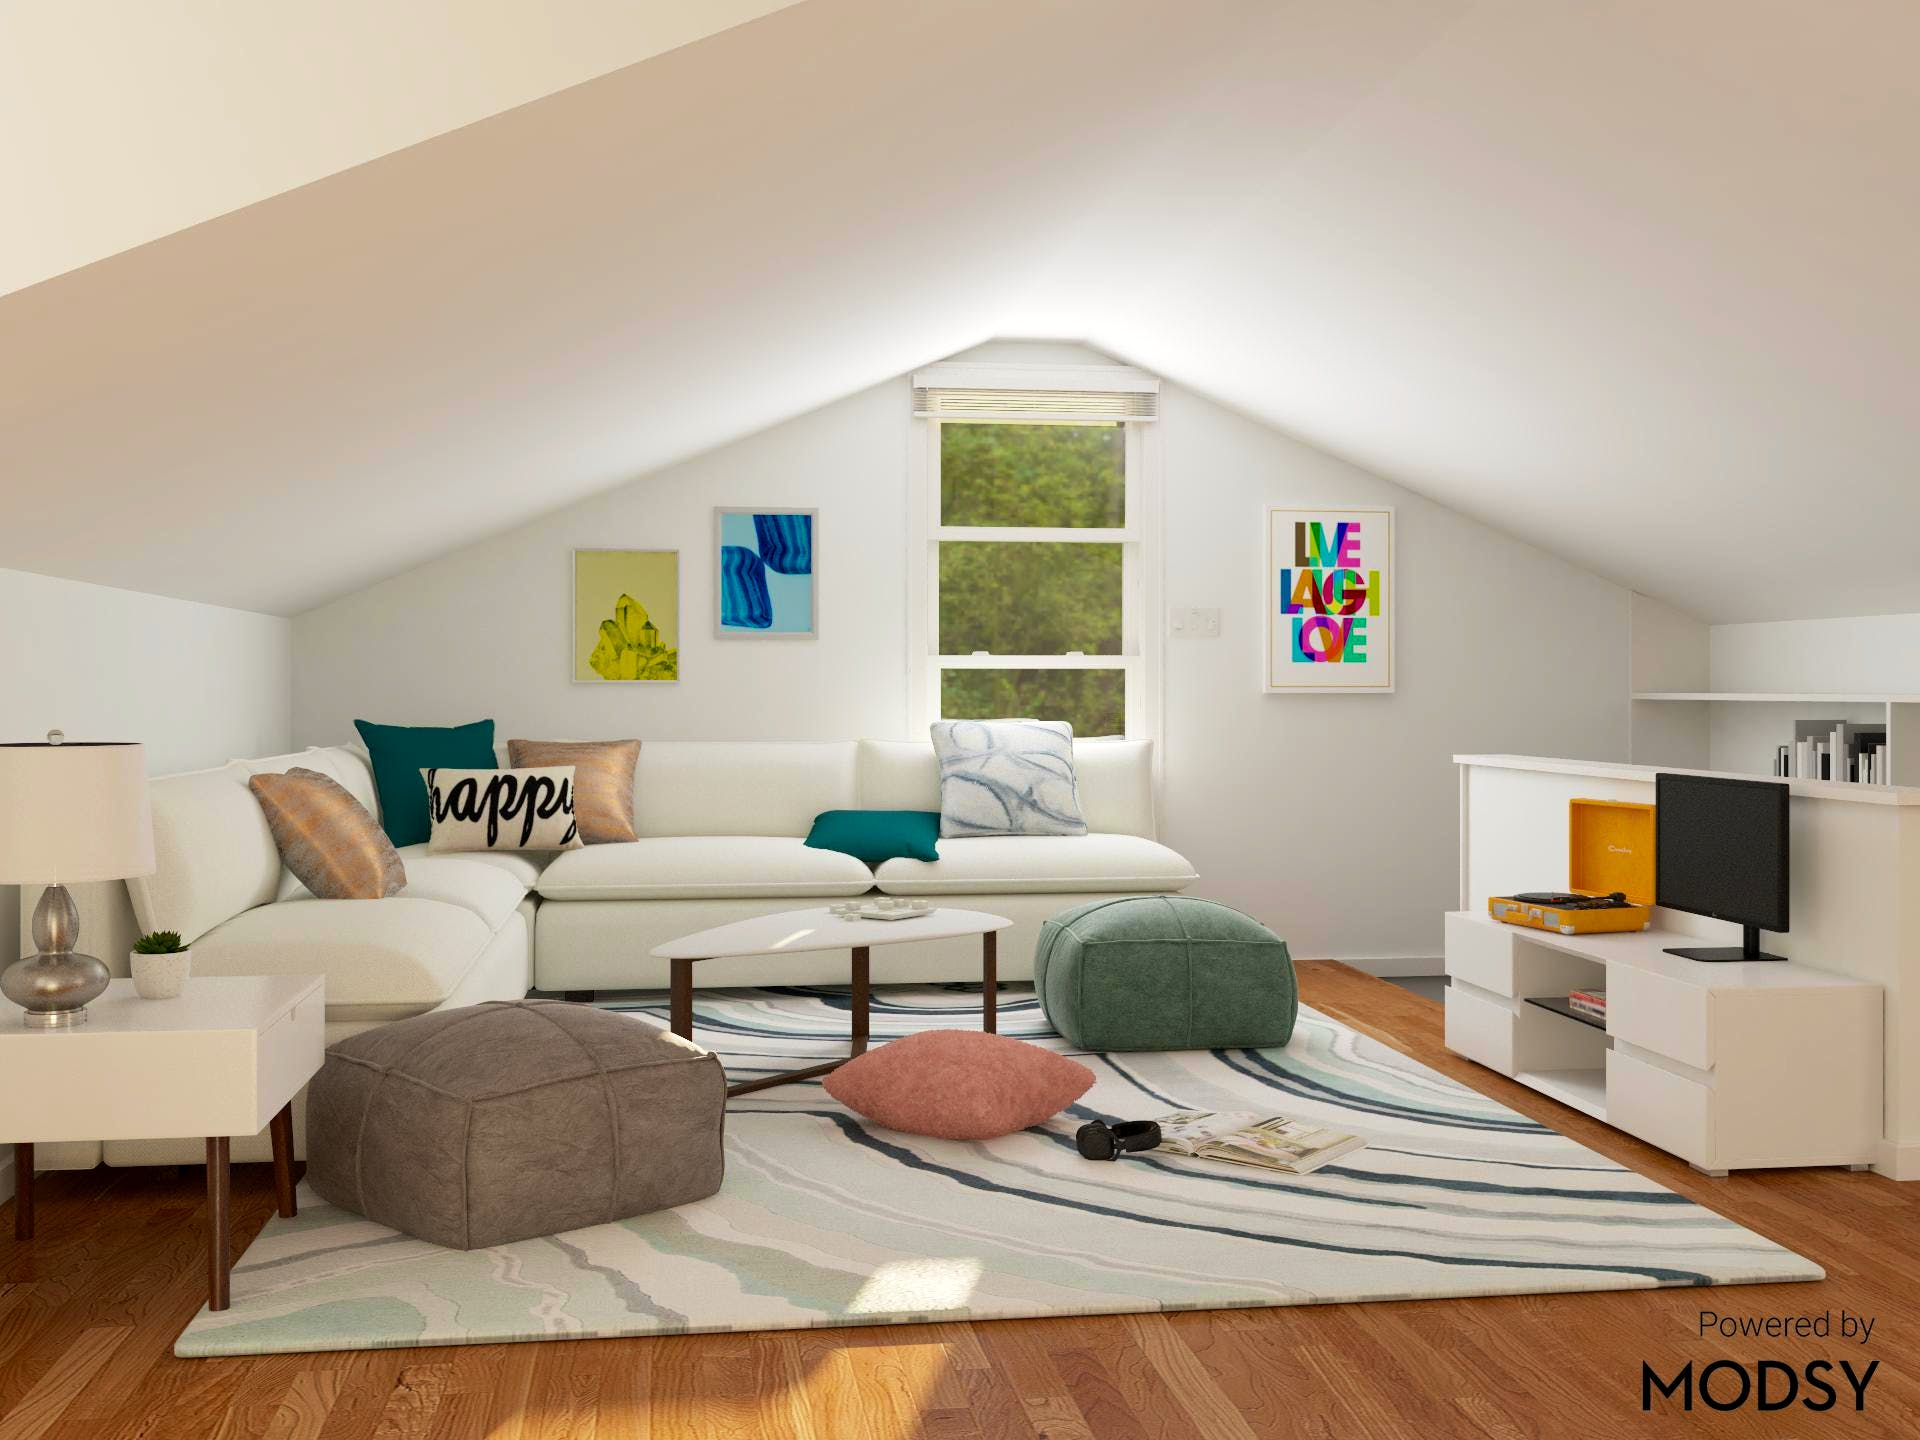 Attic Space Living Room with Contemporary Style